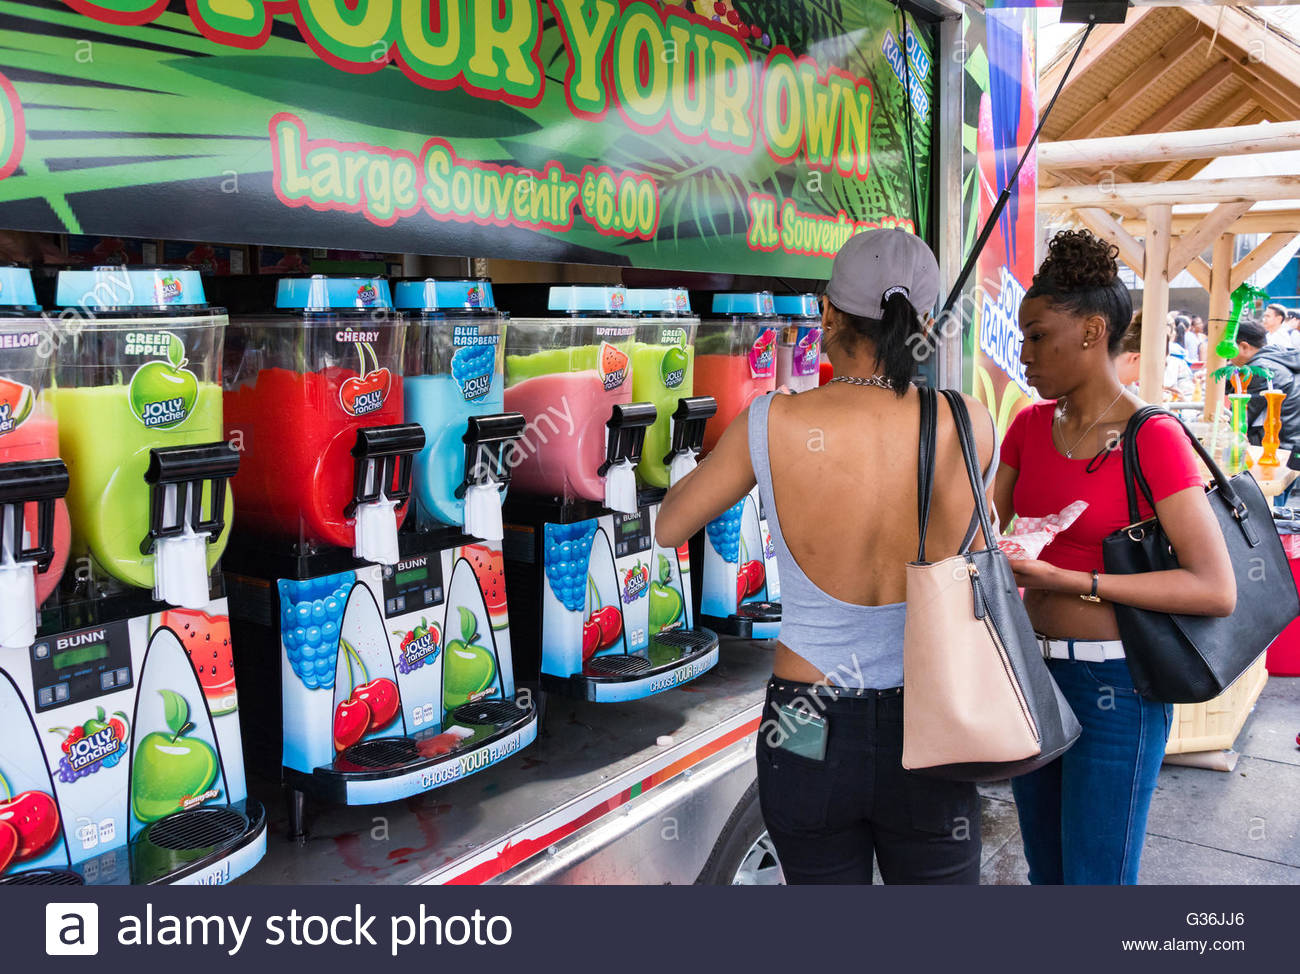 Food trucks selling frozen smoothies in festival. Regulations for food trucks has eased while the city looks for - Stock Image